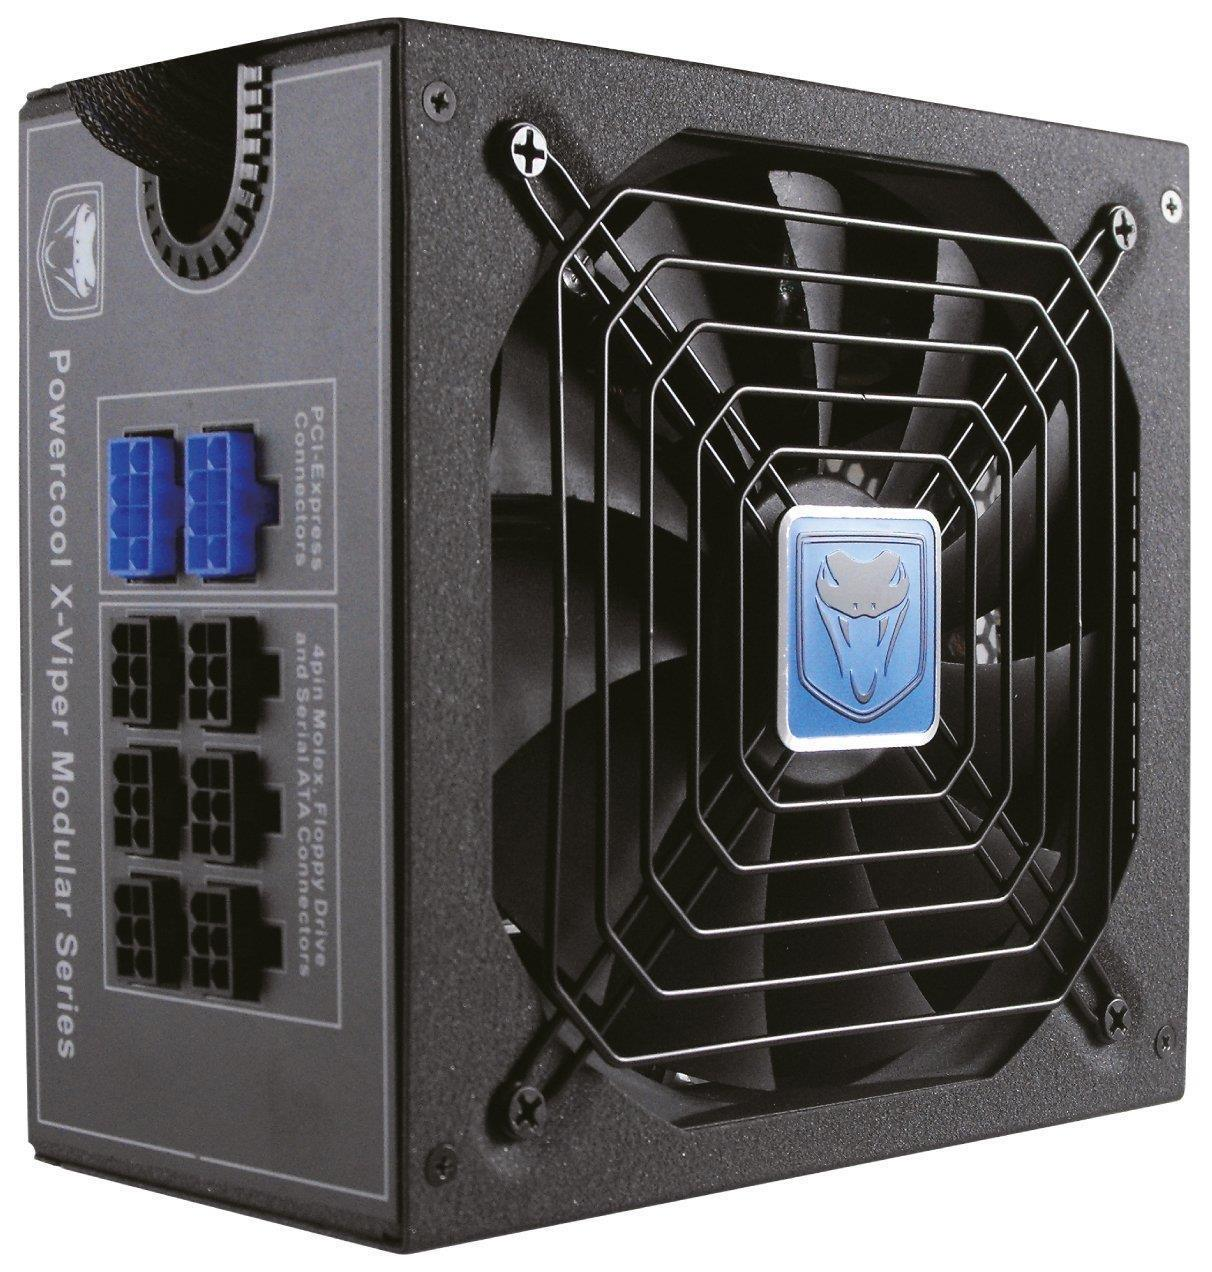 Powercool X-Viper 750W Power Supply 80 Plus Bronze